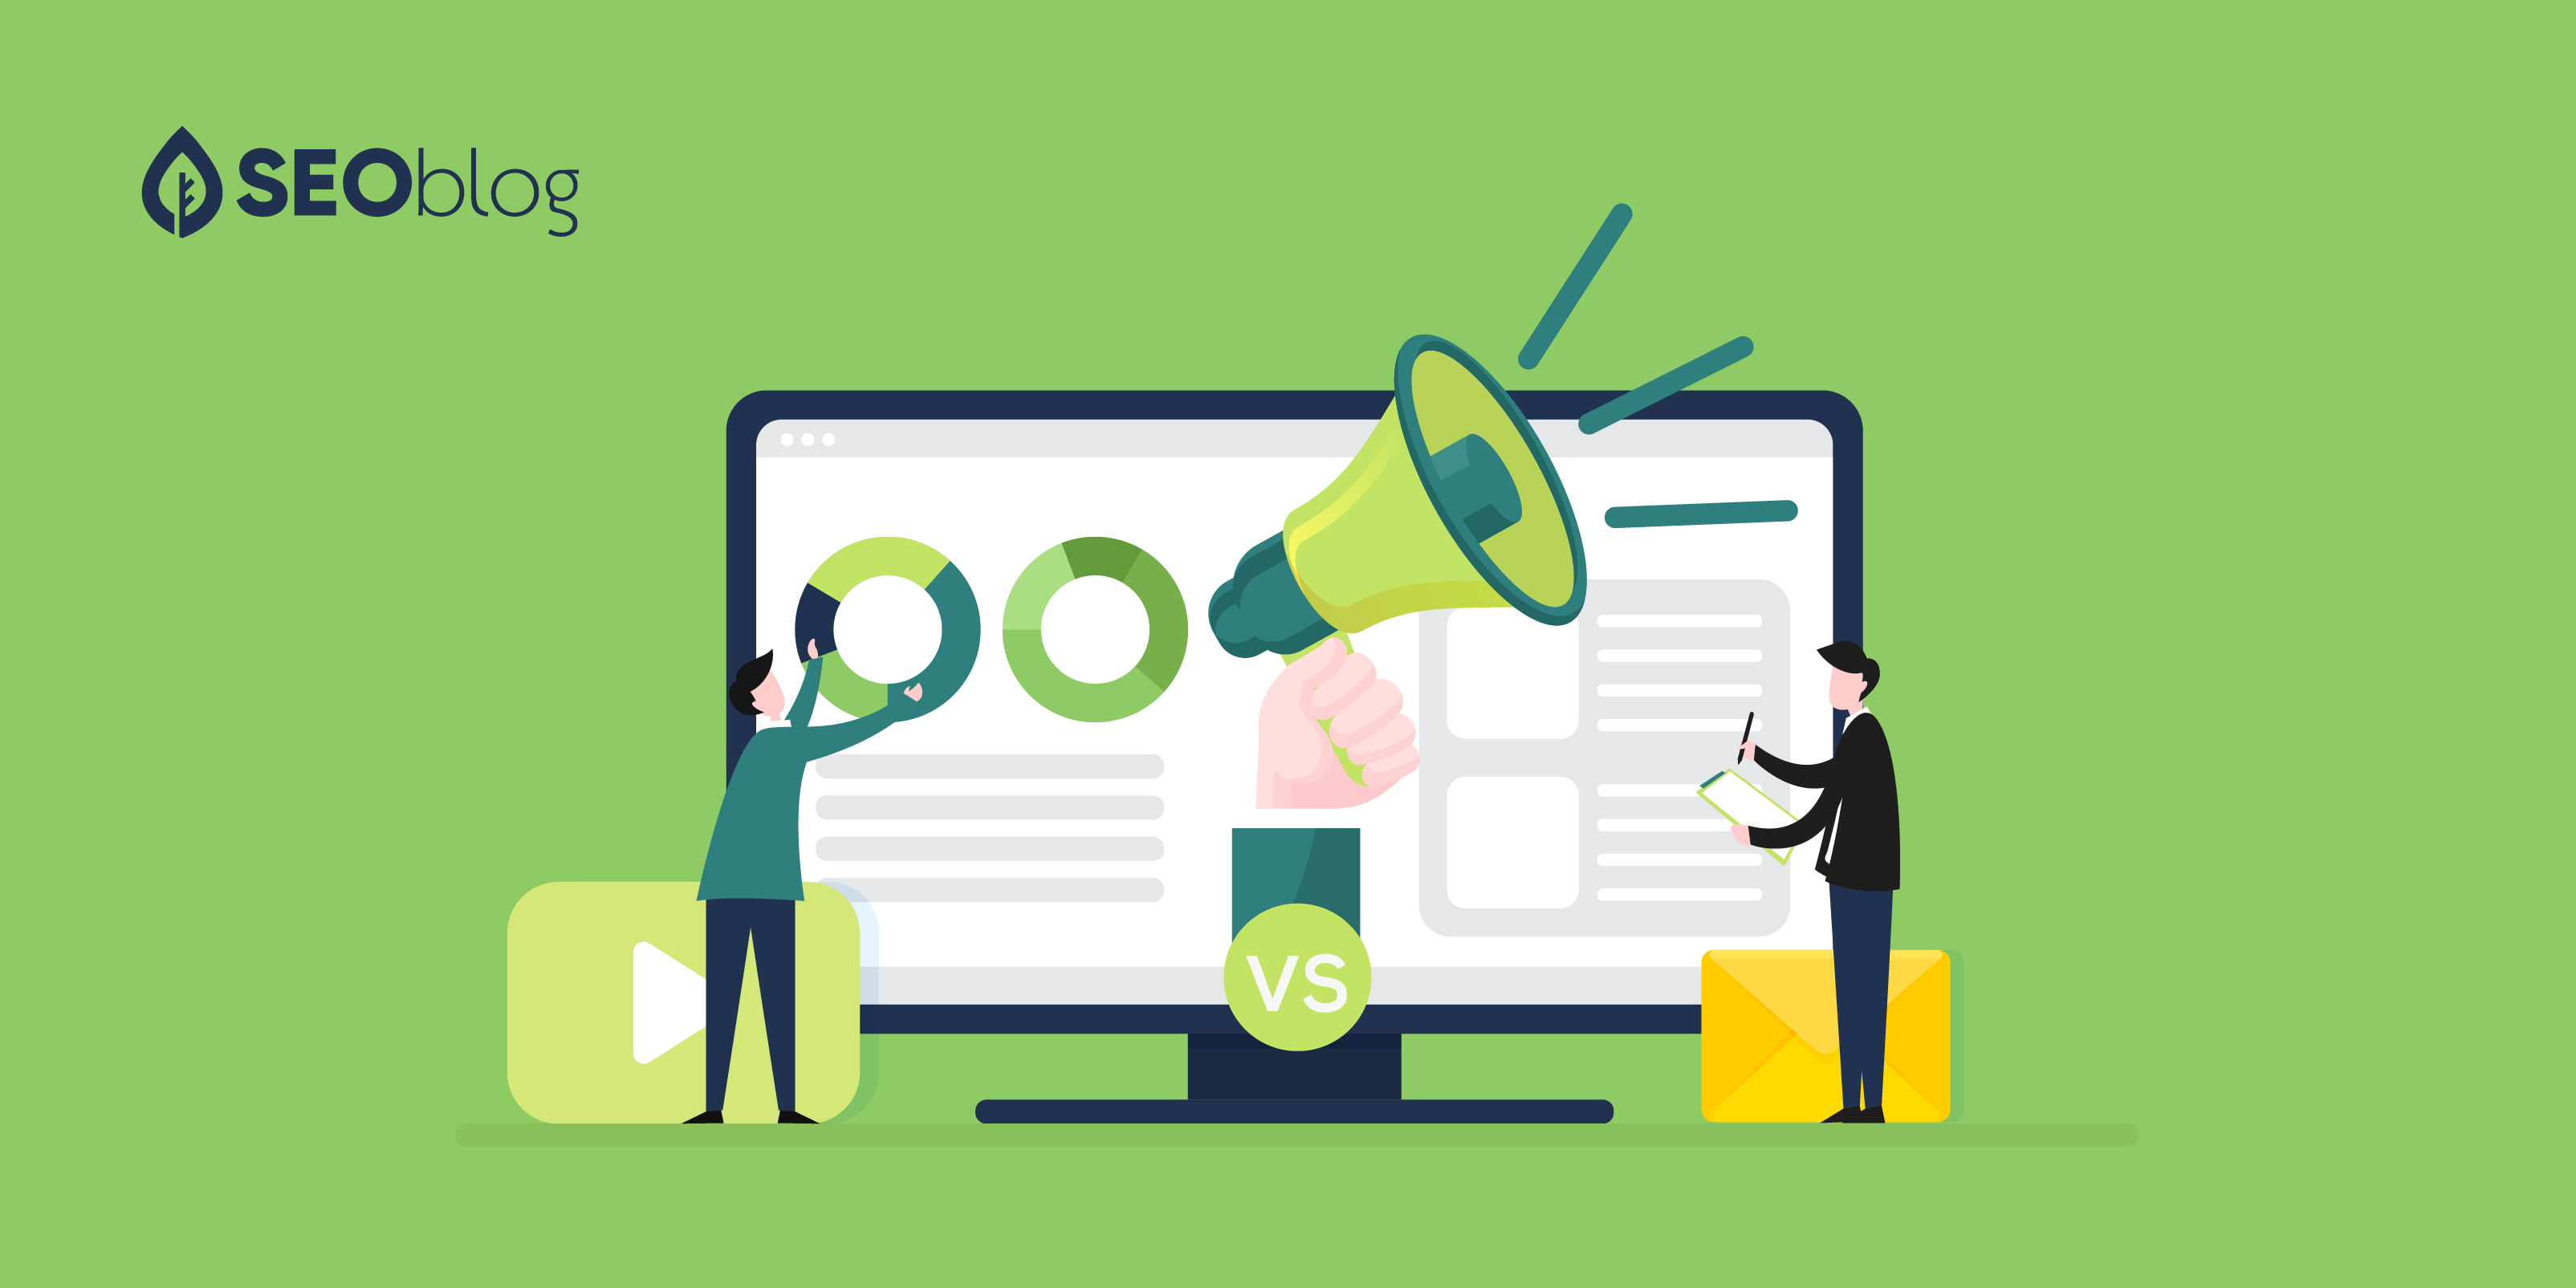 SEOblog Content Marketing vs. Digital Marketing: What is the Difference?